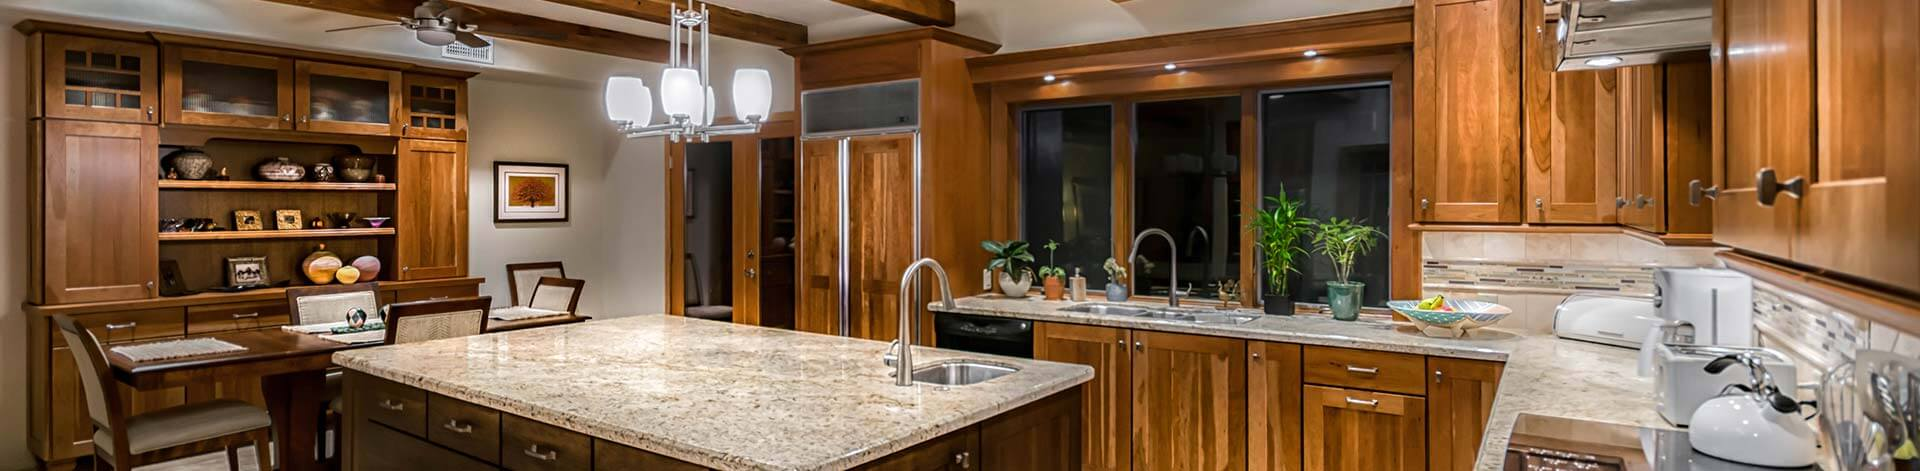 Kitchen Remodling Kitchen Remodeling In Phoenix Scottsdale Republic West Remodeling